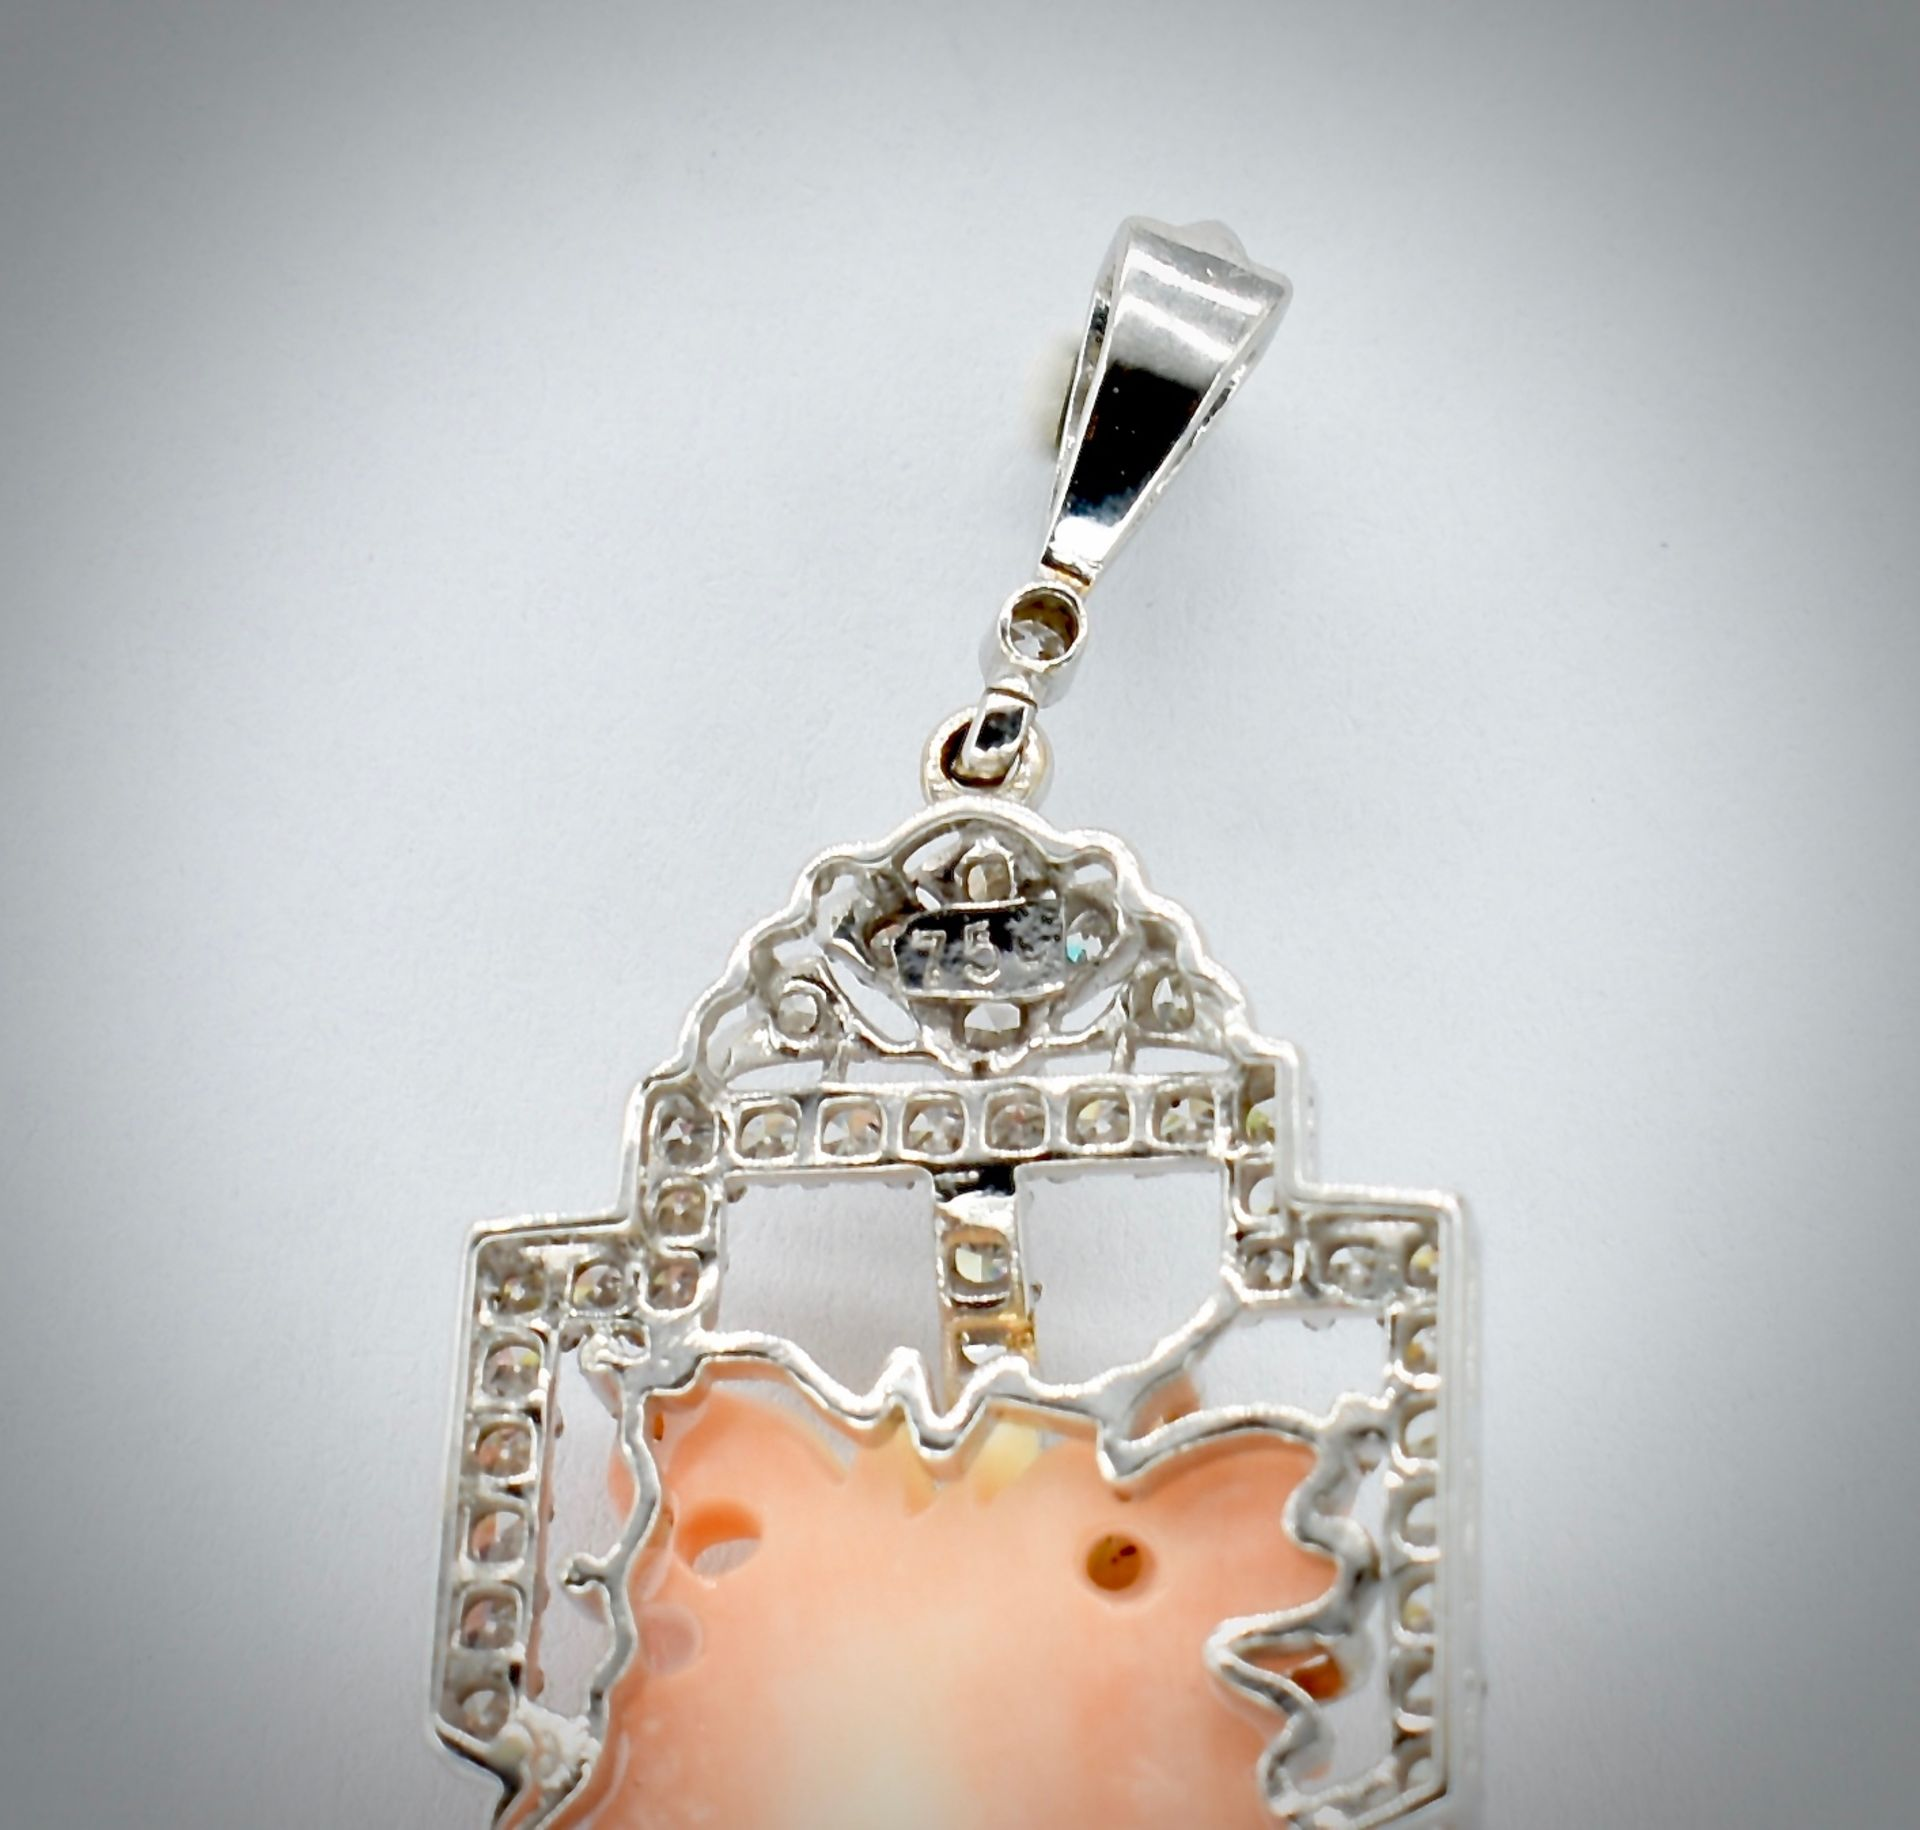 18ct Gold Coral & Diamond Necklace Pendant - Image 4 of 5